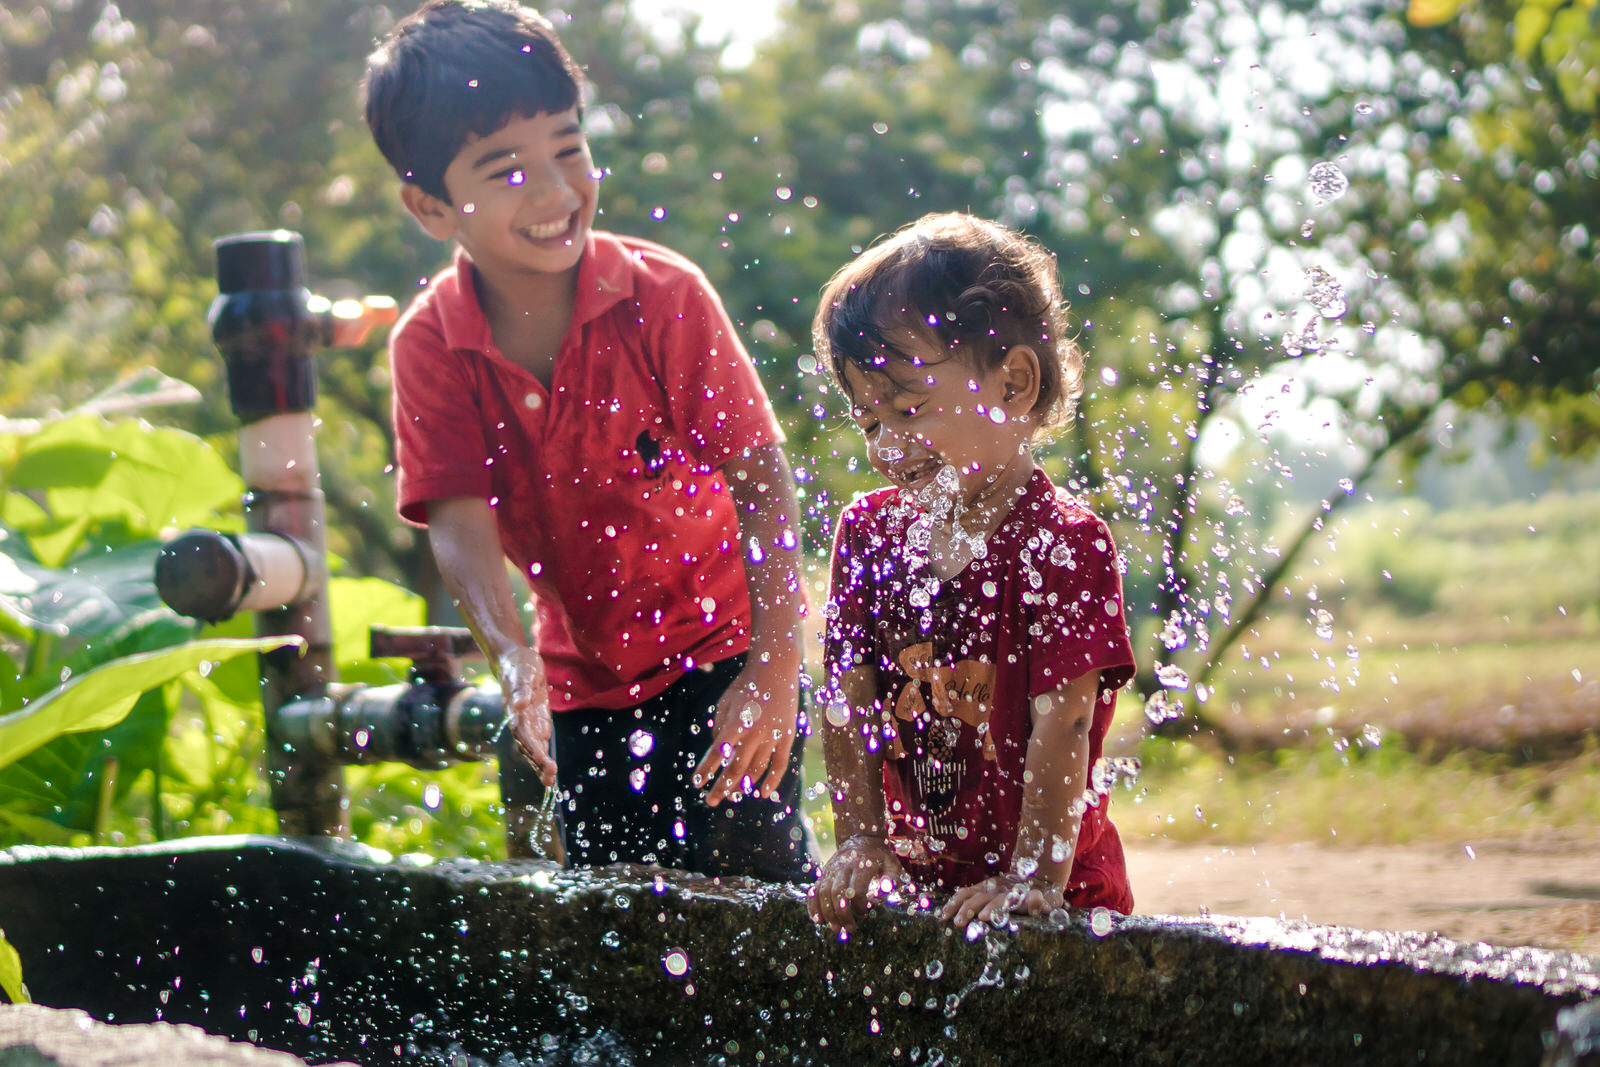 23122017-Boys-Playing-Water-Tank-187.jpg